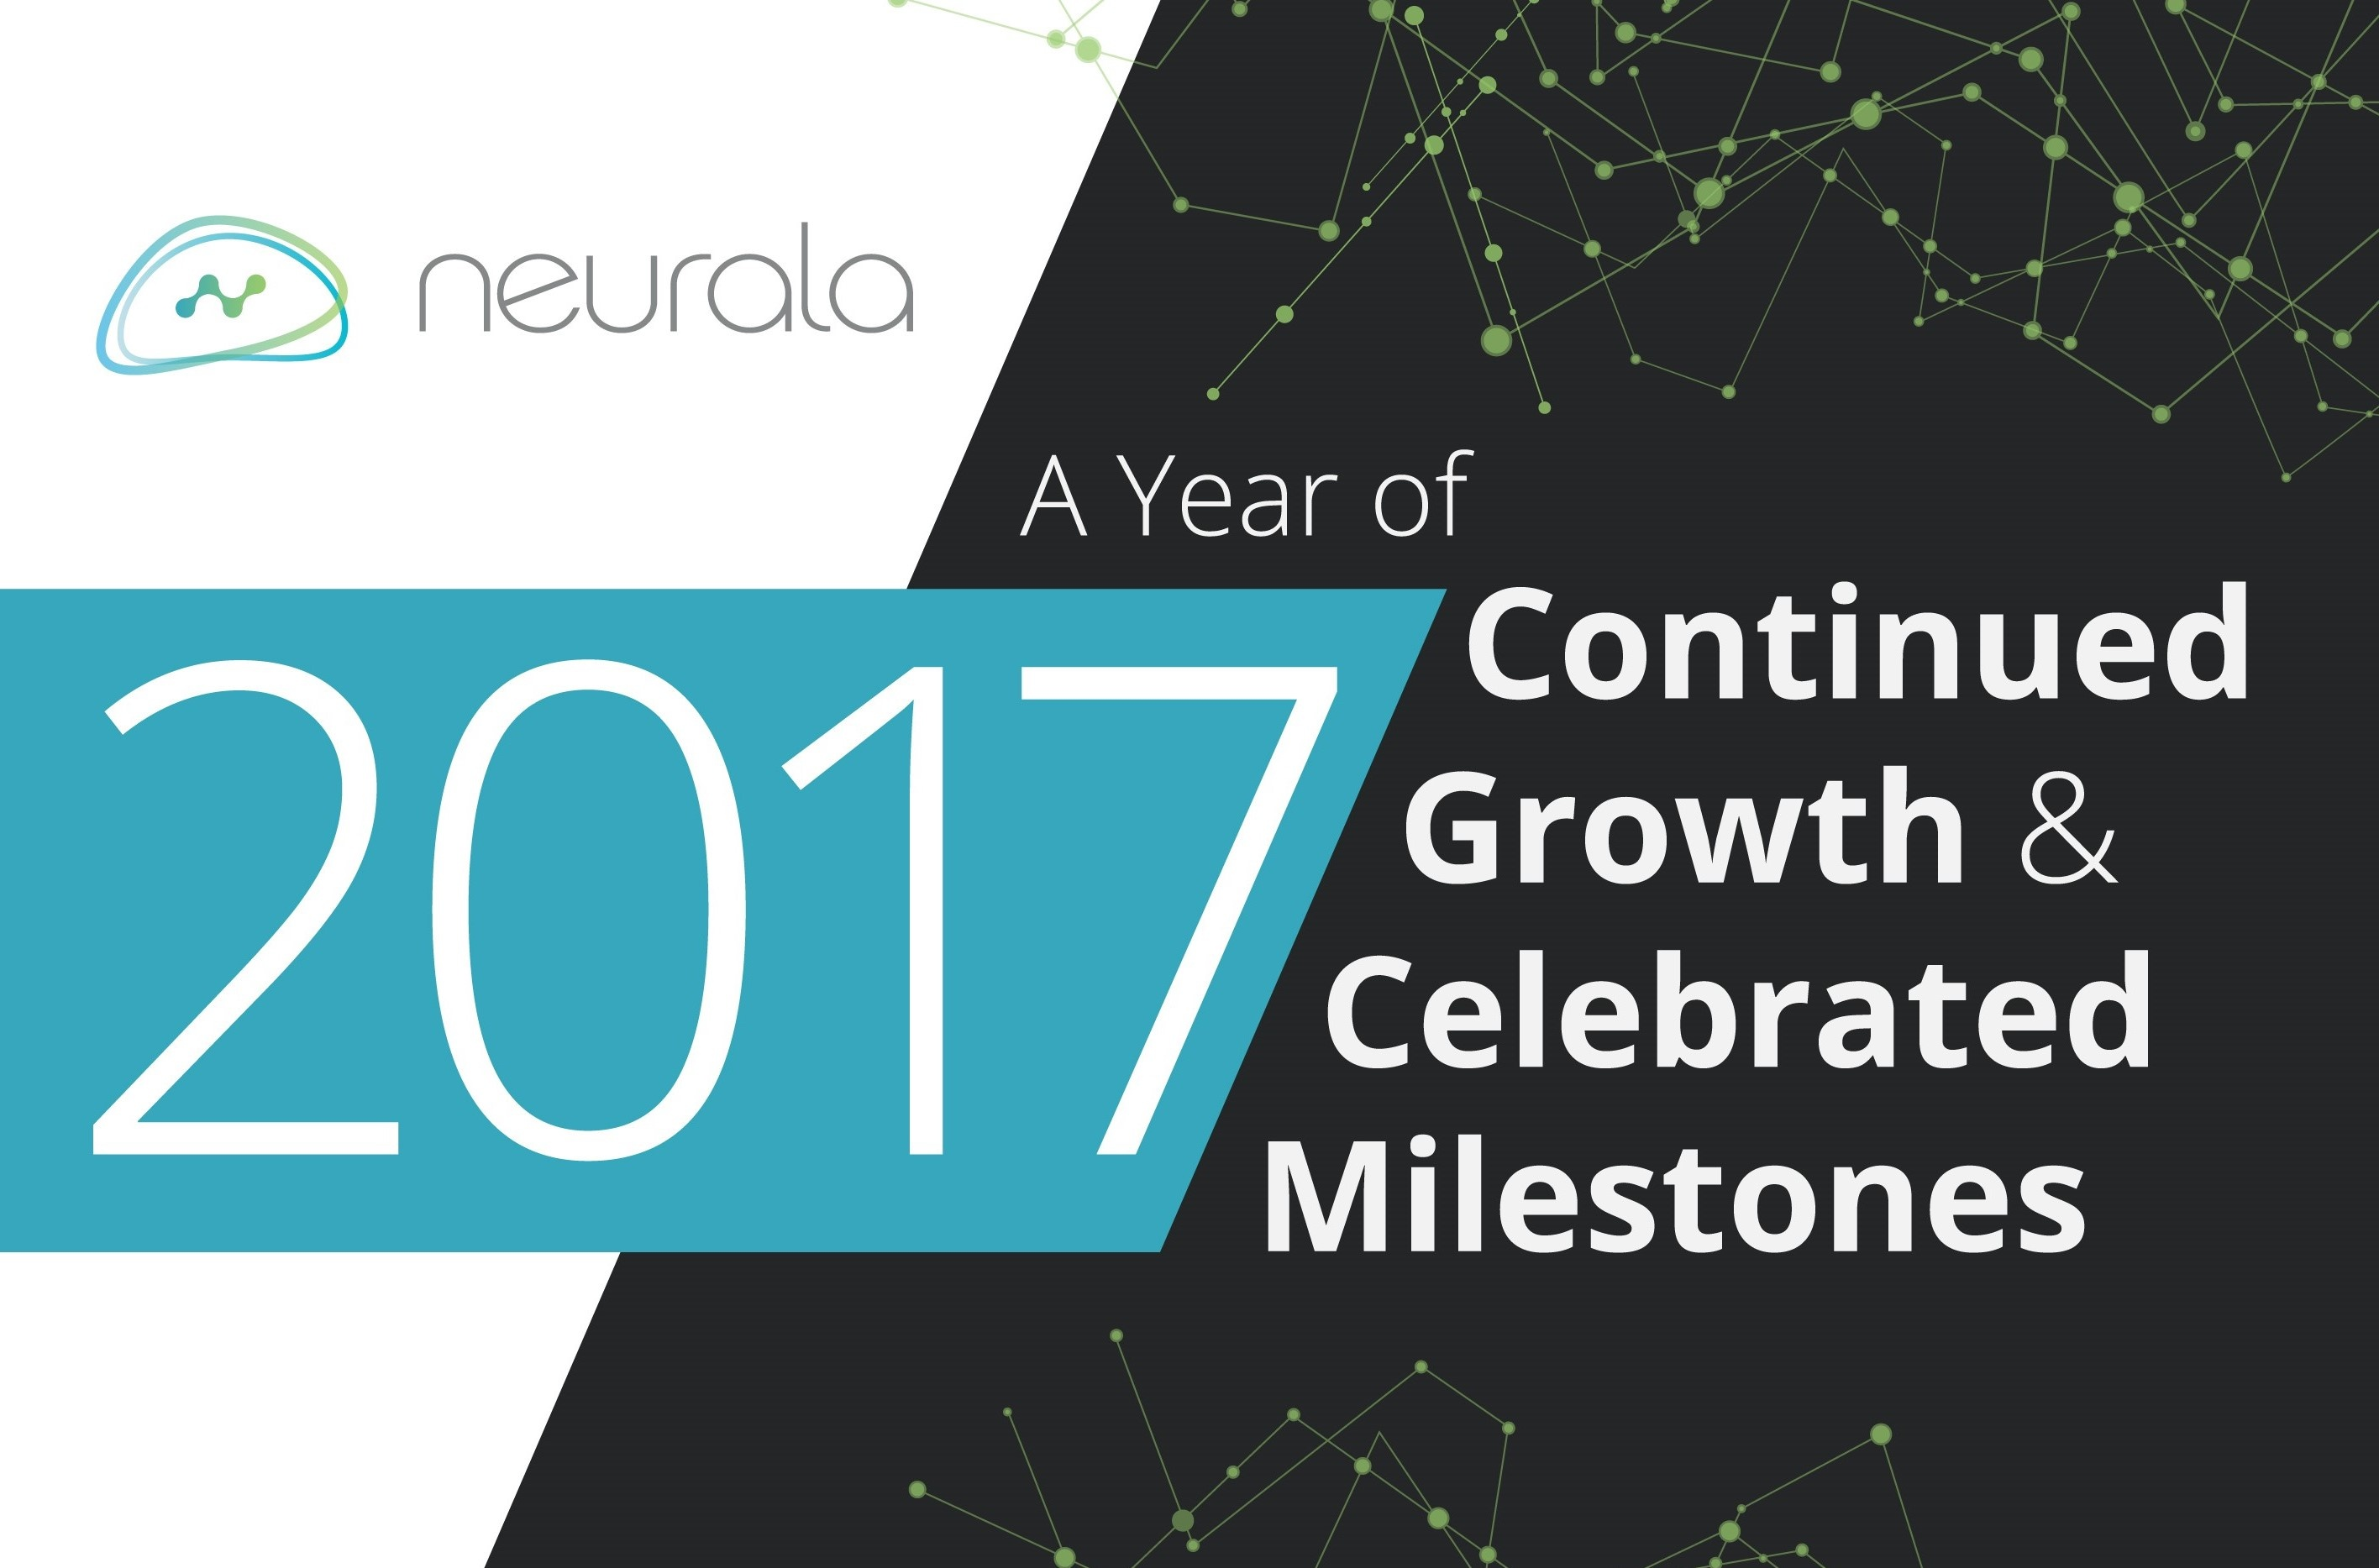 Neurala Closes Record-Breaking Year With Continued Growth and New Accolades